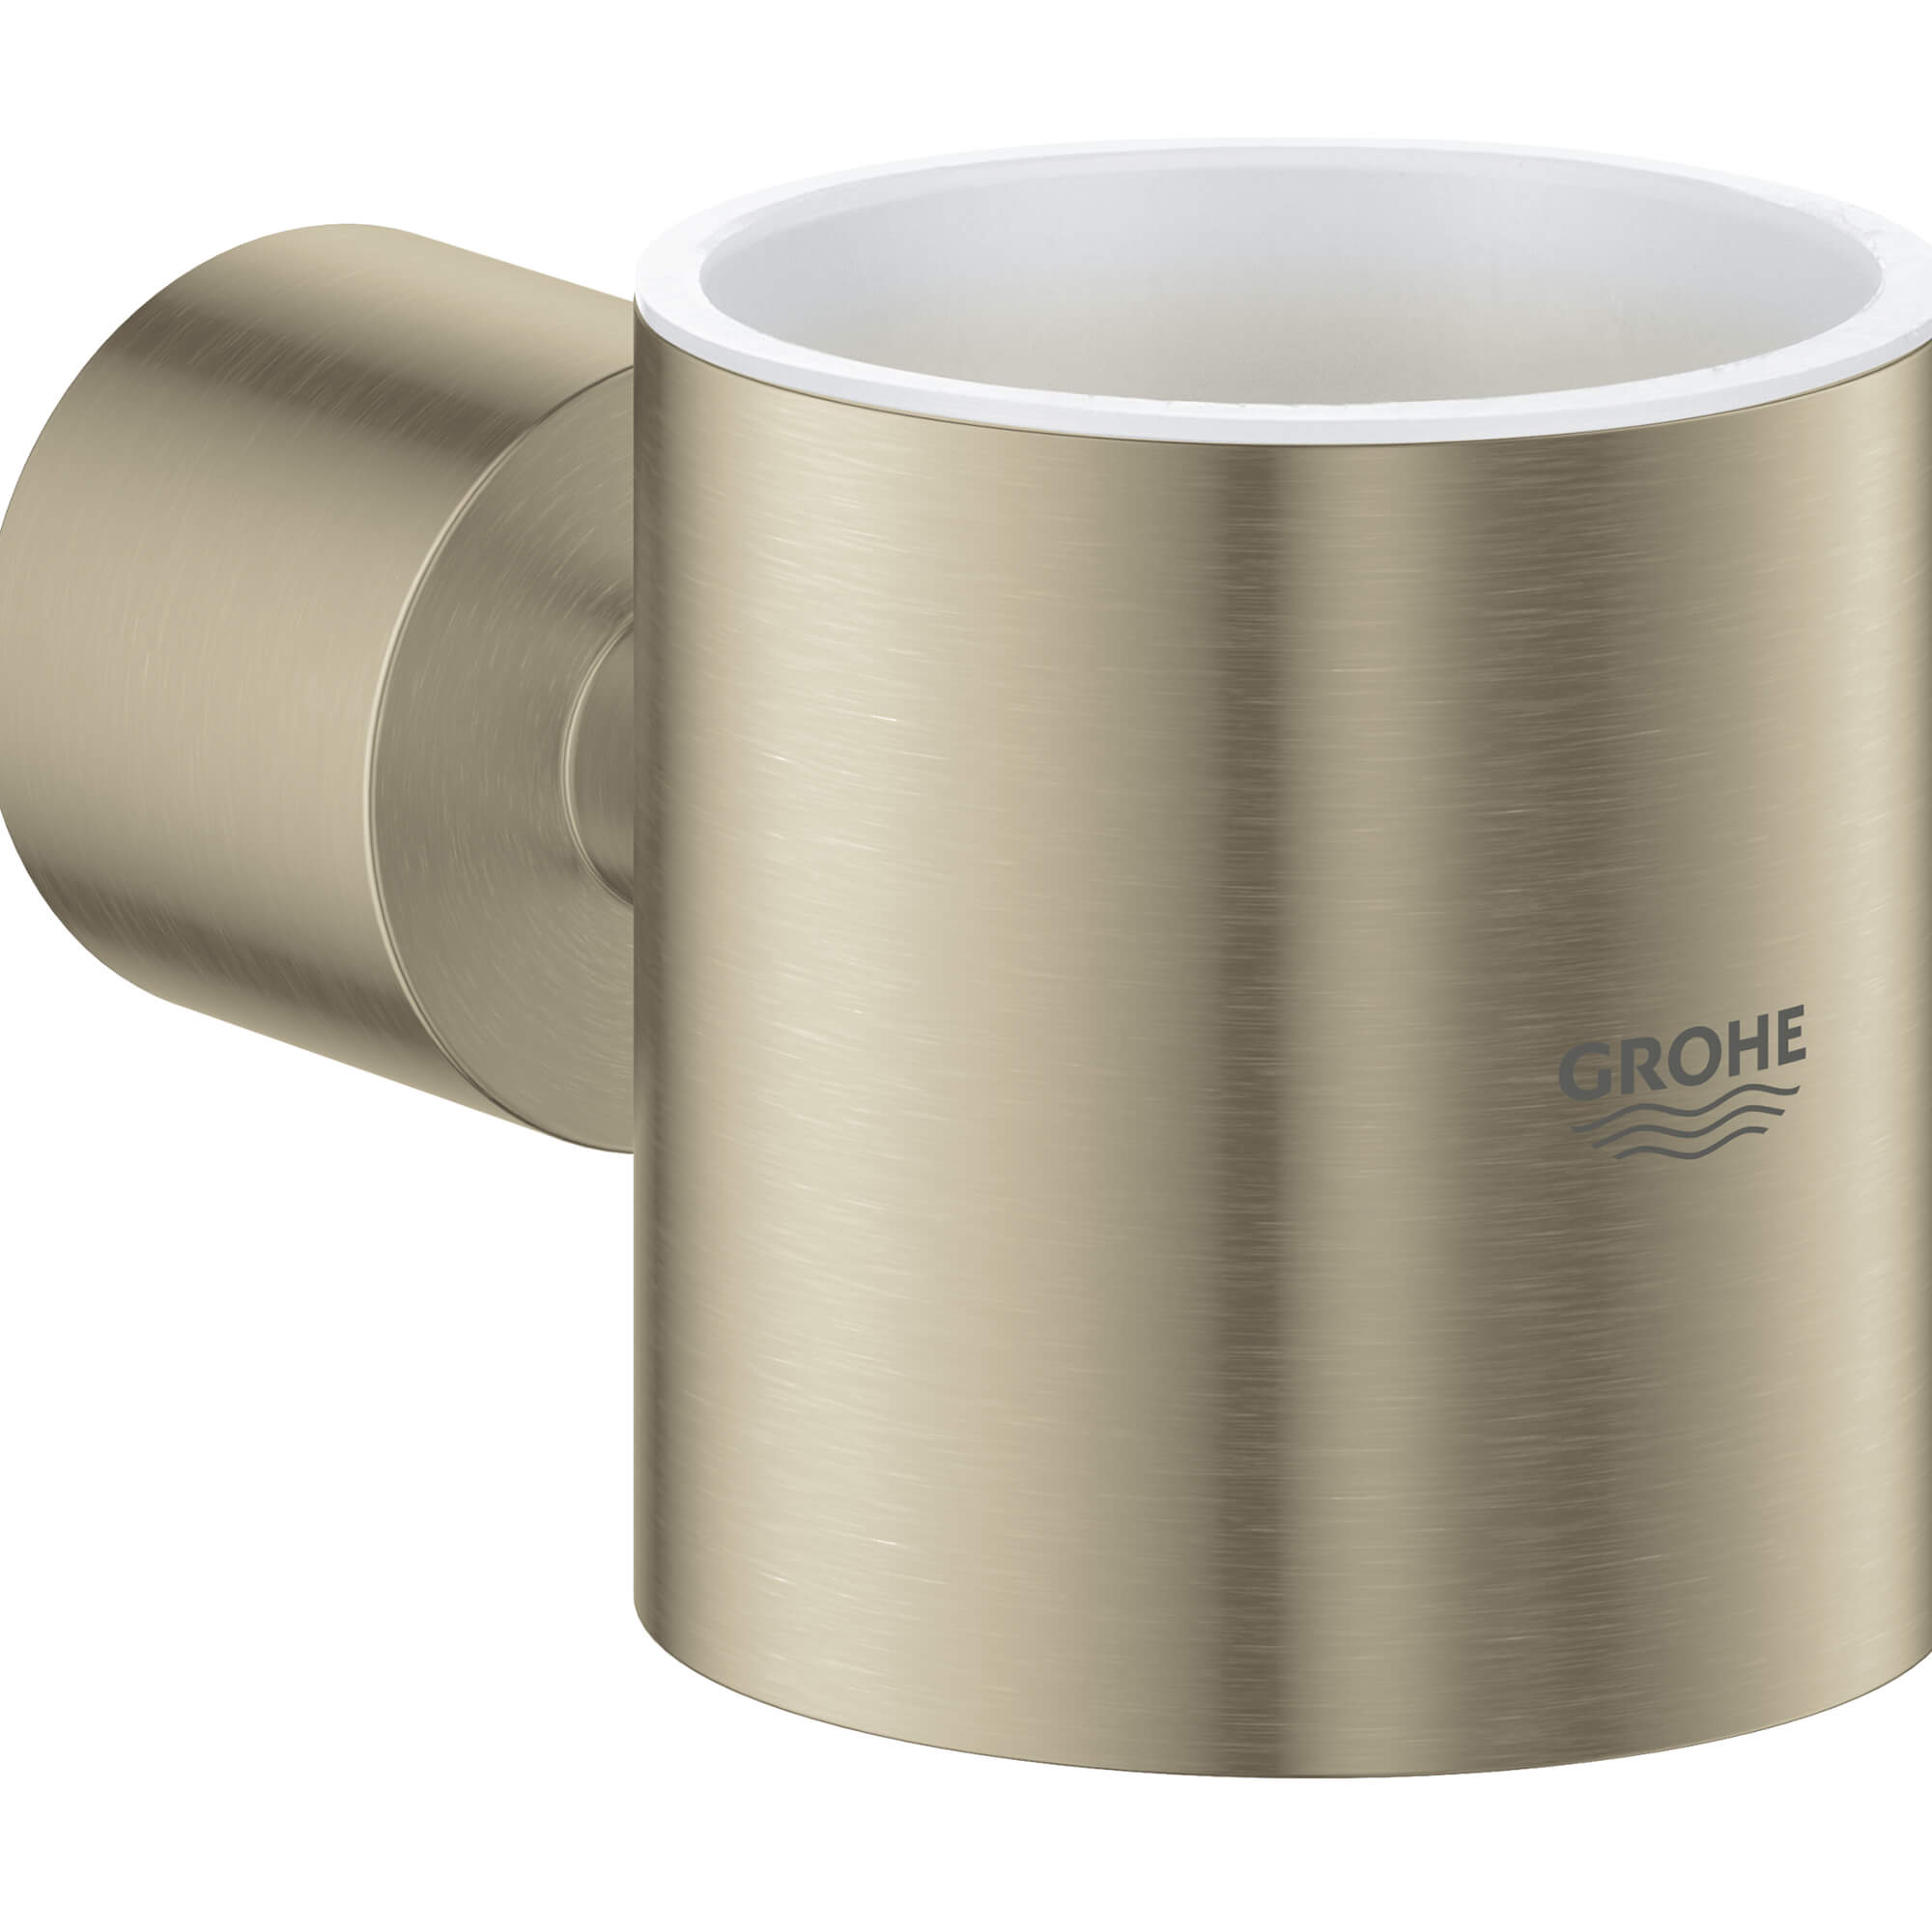 ATRIO Holder GROHE BRUSHED NICKEL